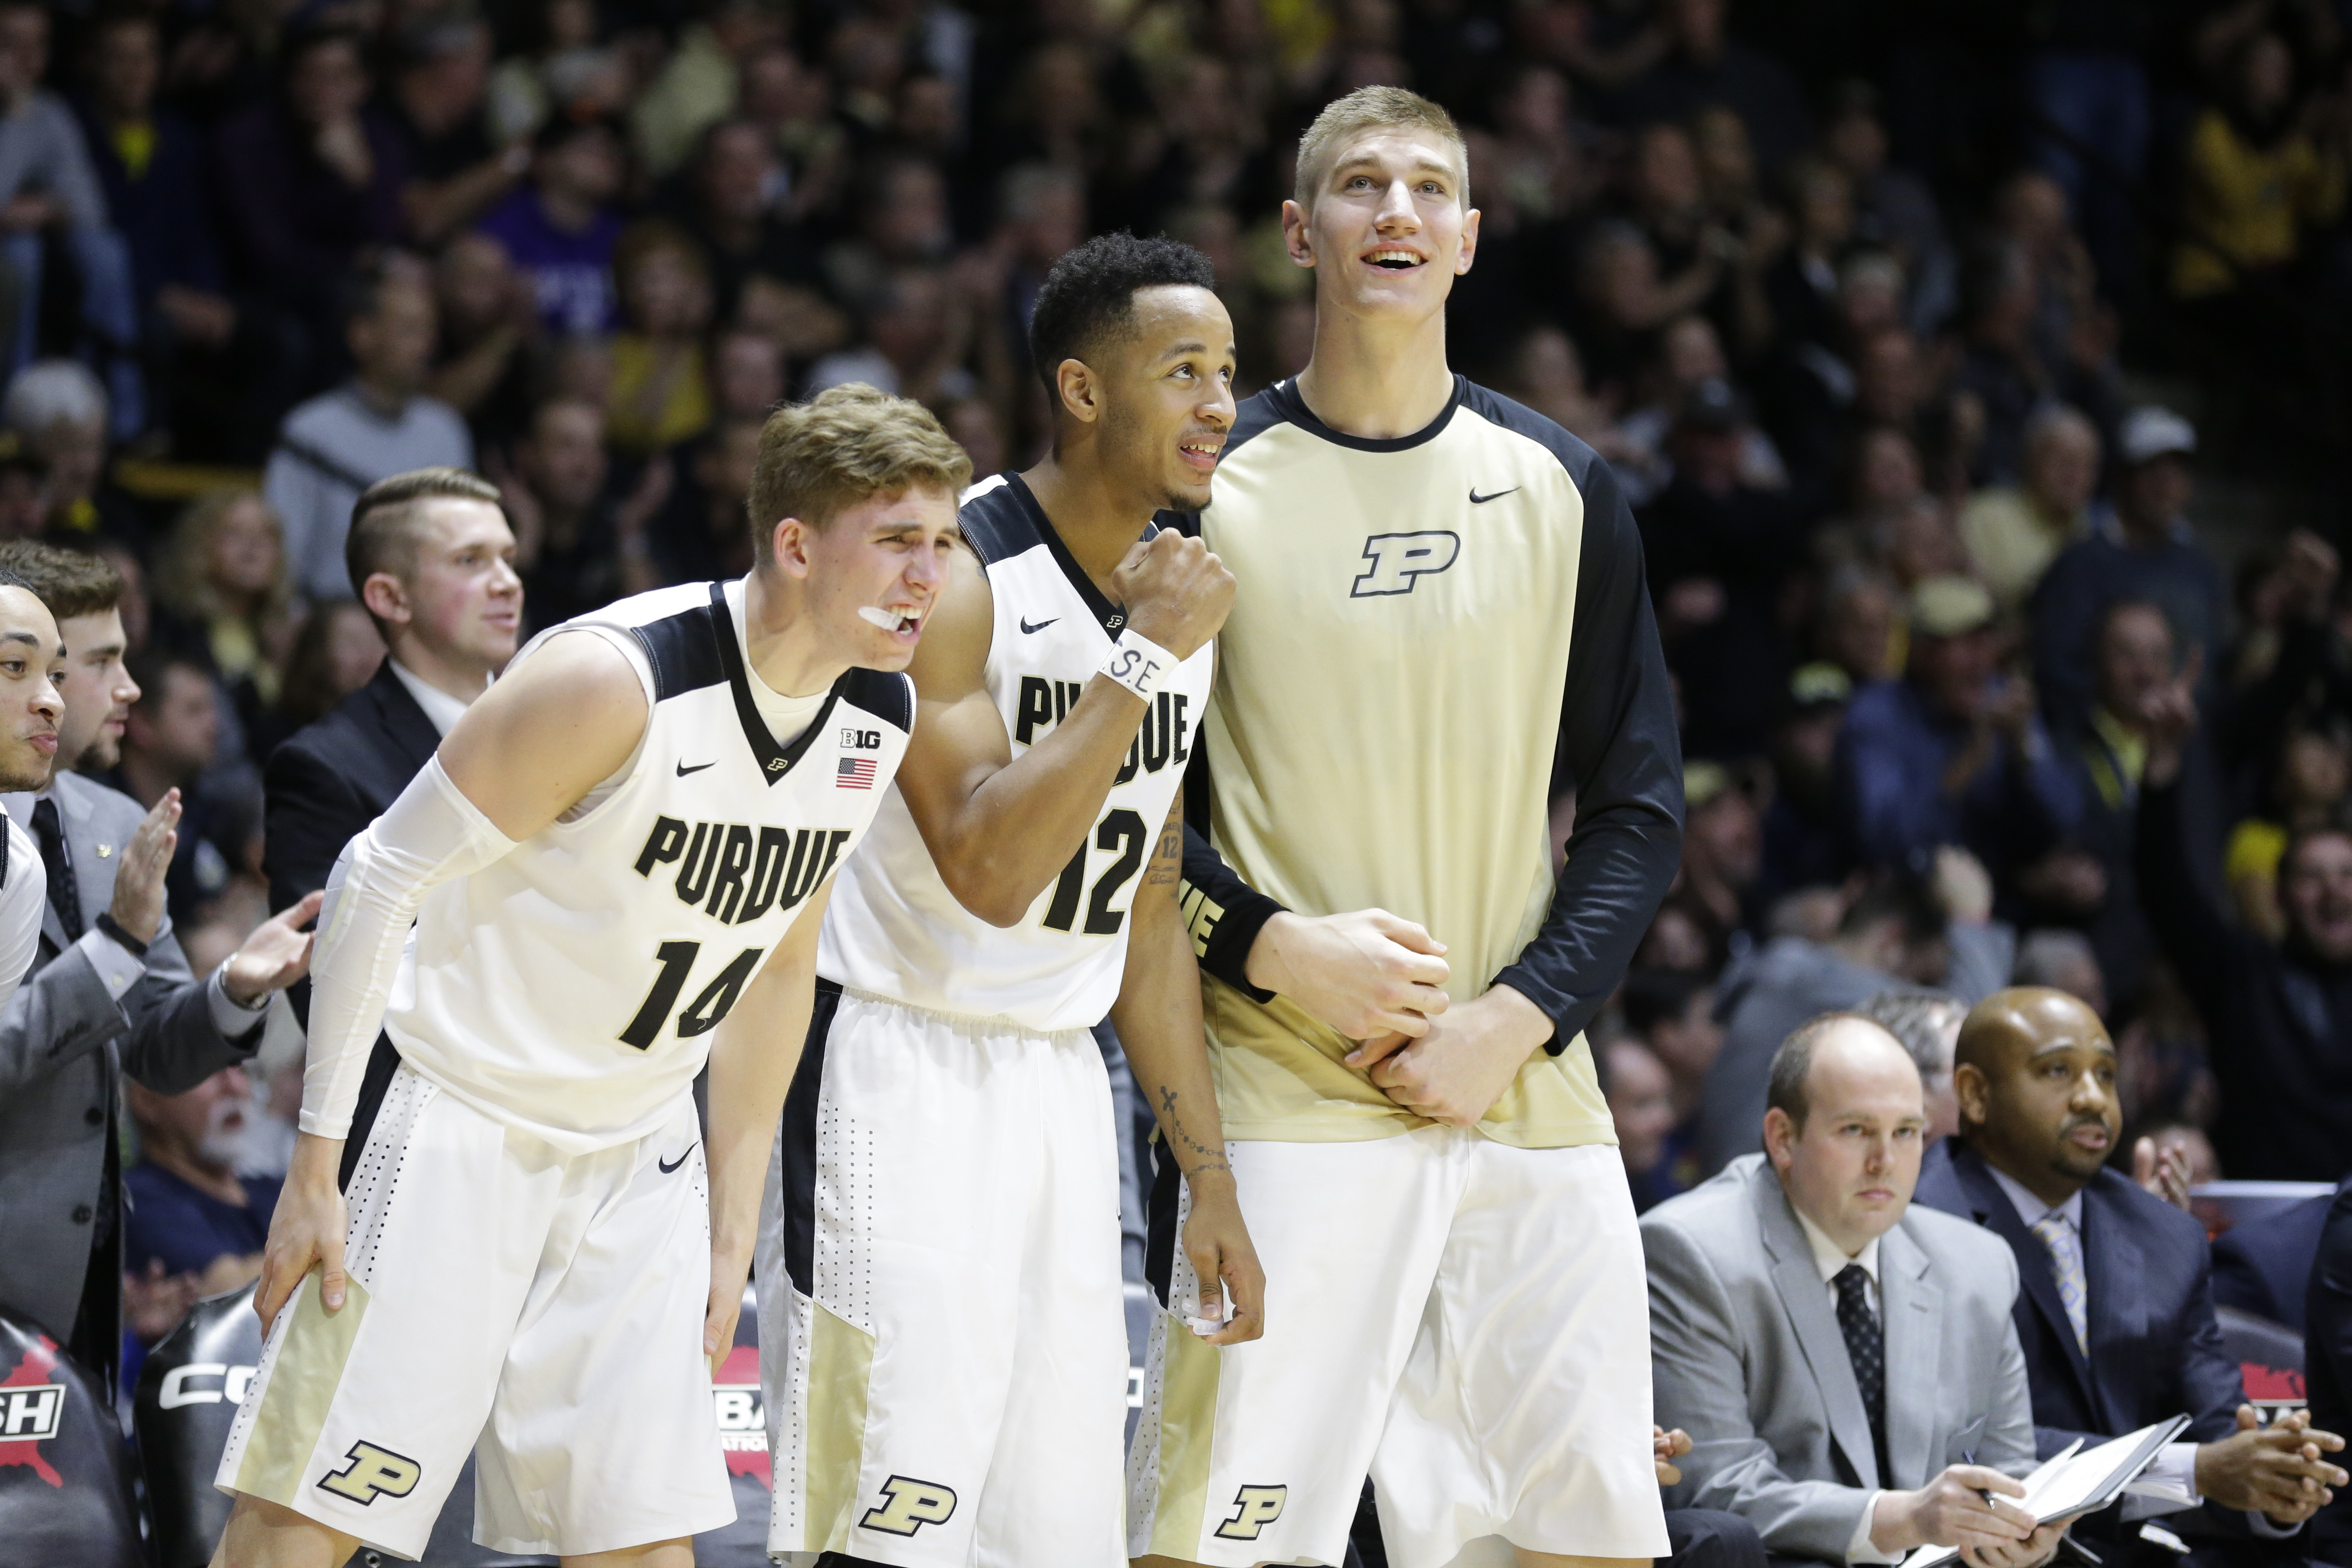 Purdue guard Ryan Cline (14), forward Vince Edwards (12) and center Isaac Haas cheer on the bench during the second half of the team's NCAA college basketball game against the Michigan in West Lafayette, Ind., Thursday, Jan. 7, 2016. Purdue defeated Michi